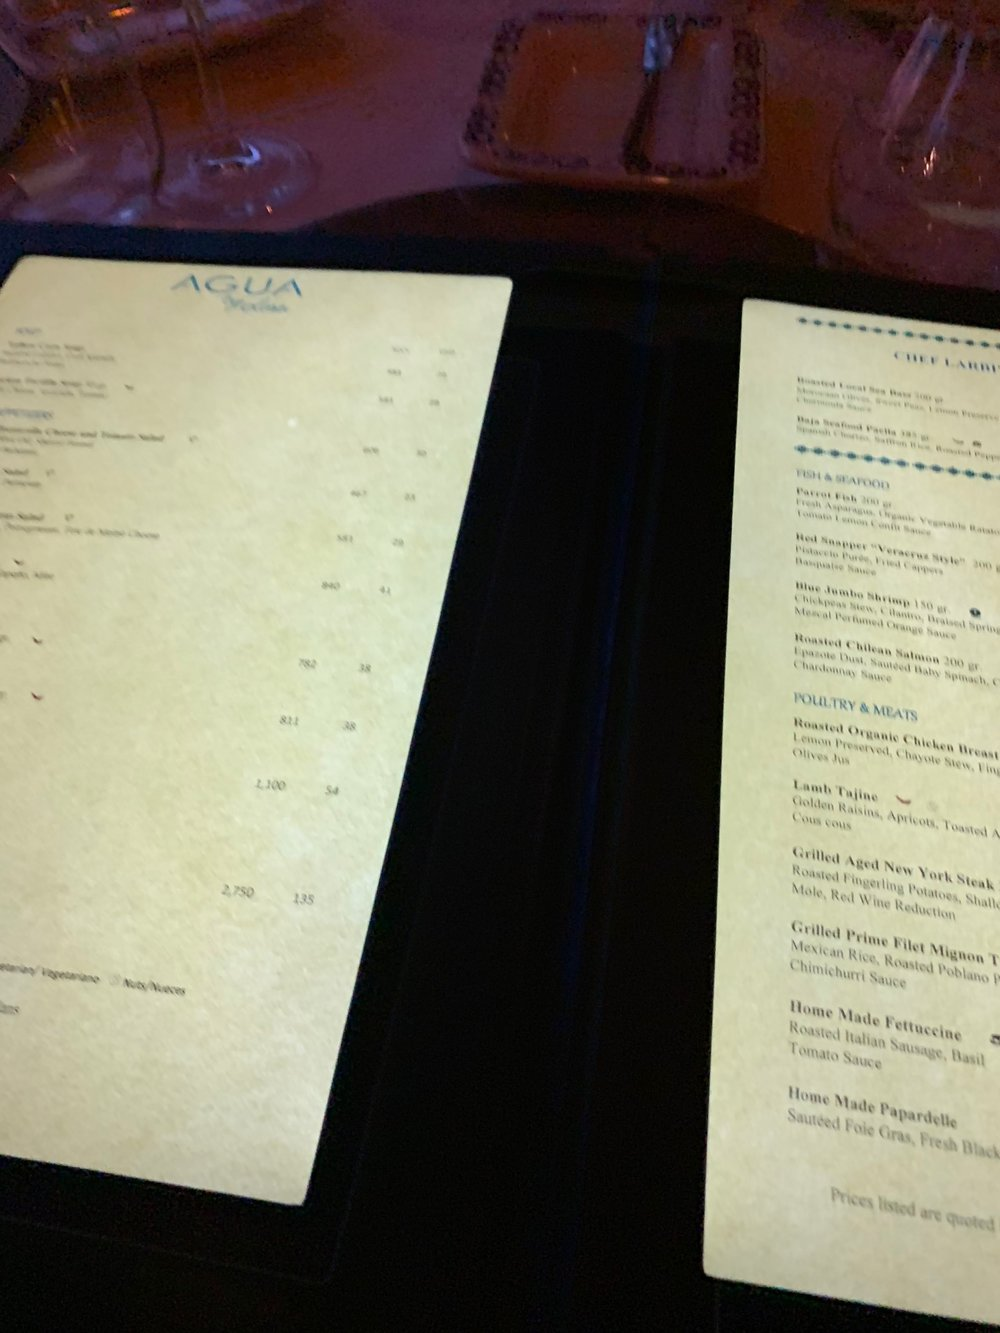 I can read this menu all the way from home!